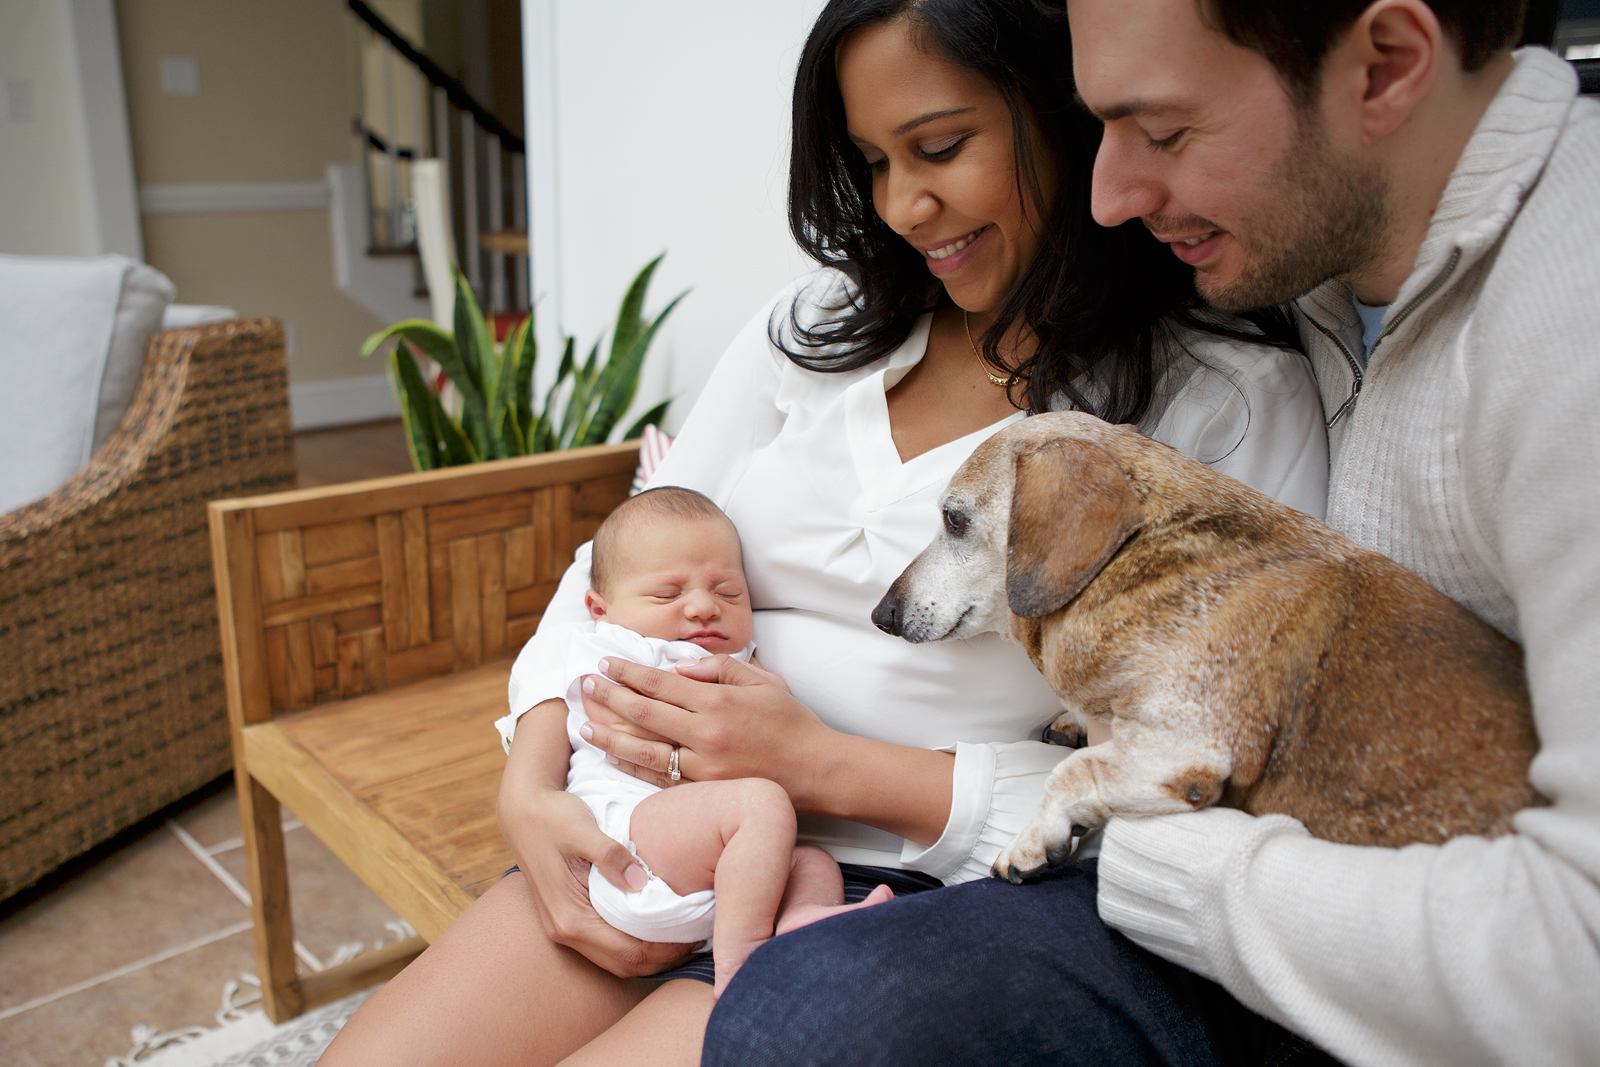 Dog Angry With Baby Maternity Silhouette Family Newborn Pictures